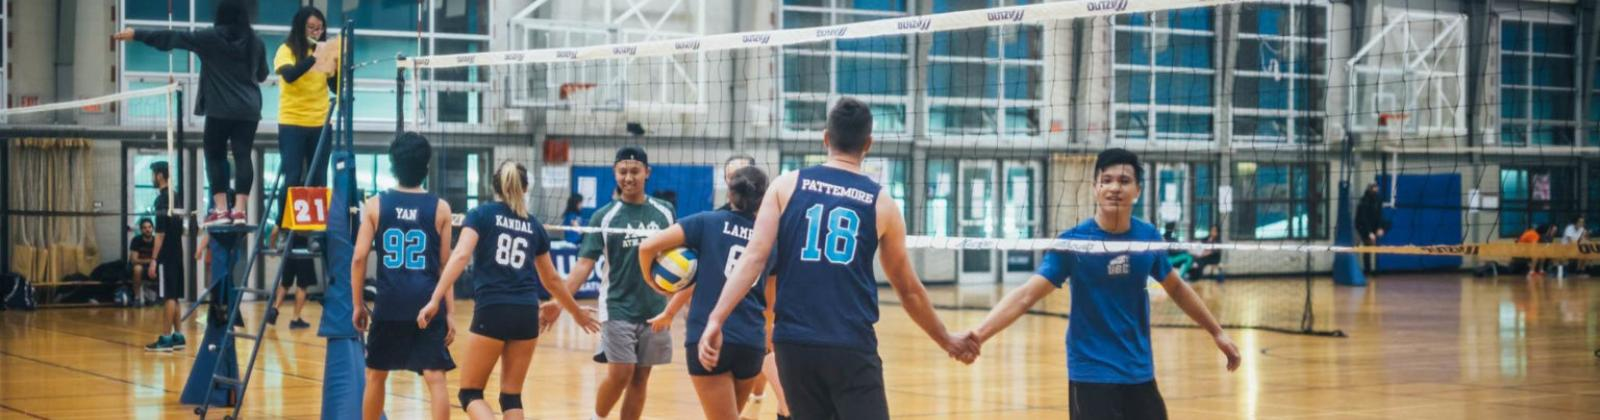 UBC Rec volleyball event